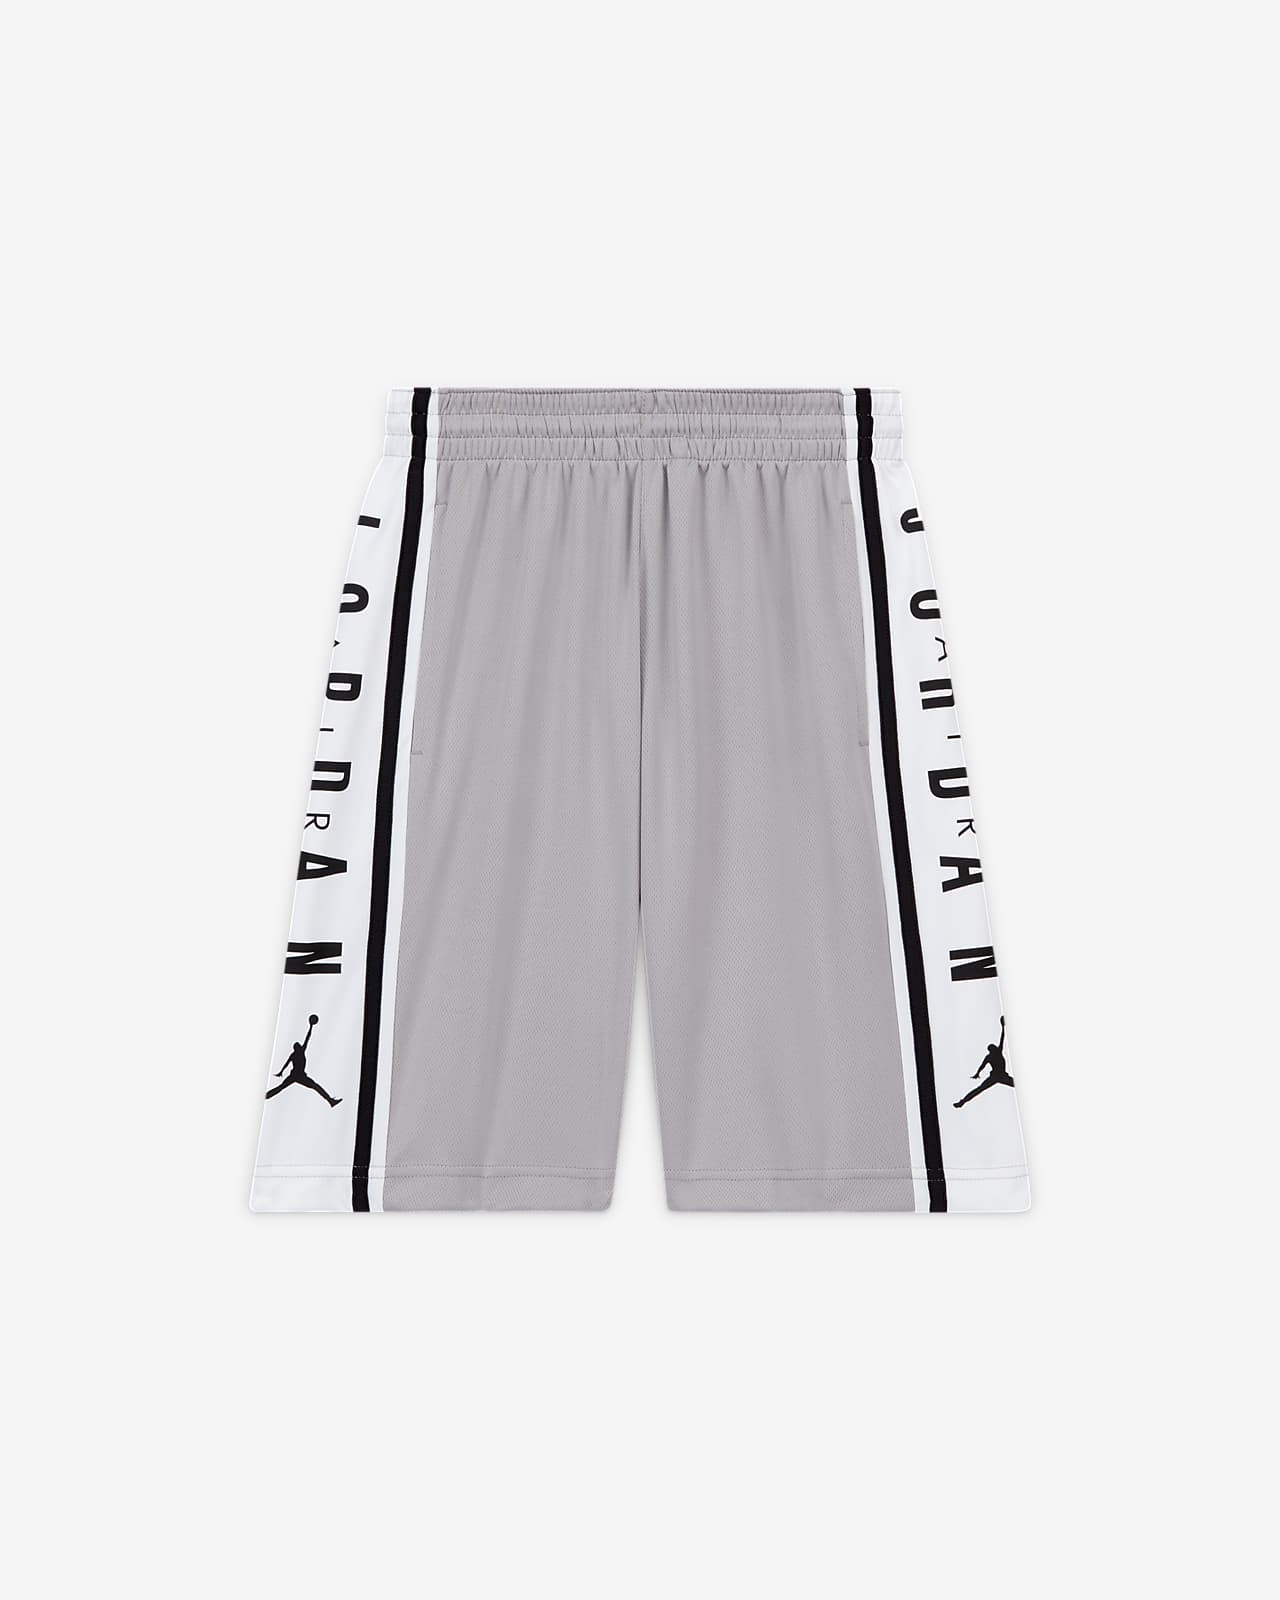 Air Jordan Dri-FIT Shorts mit Color-Blocking für ältere Kinder (Jungen)